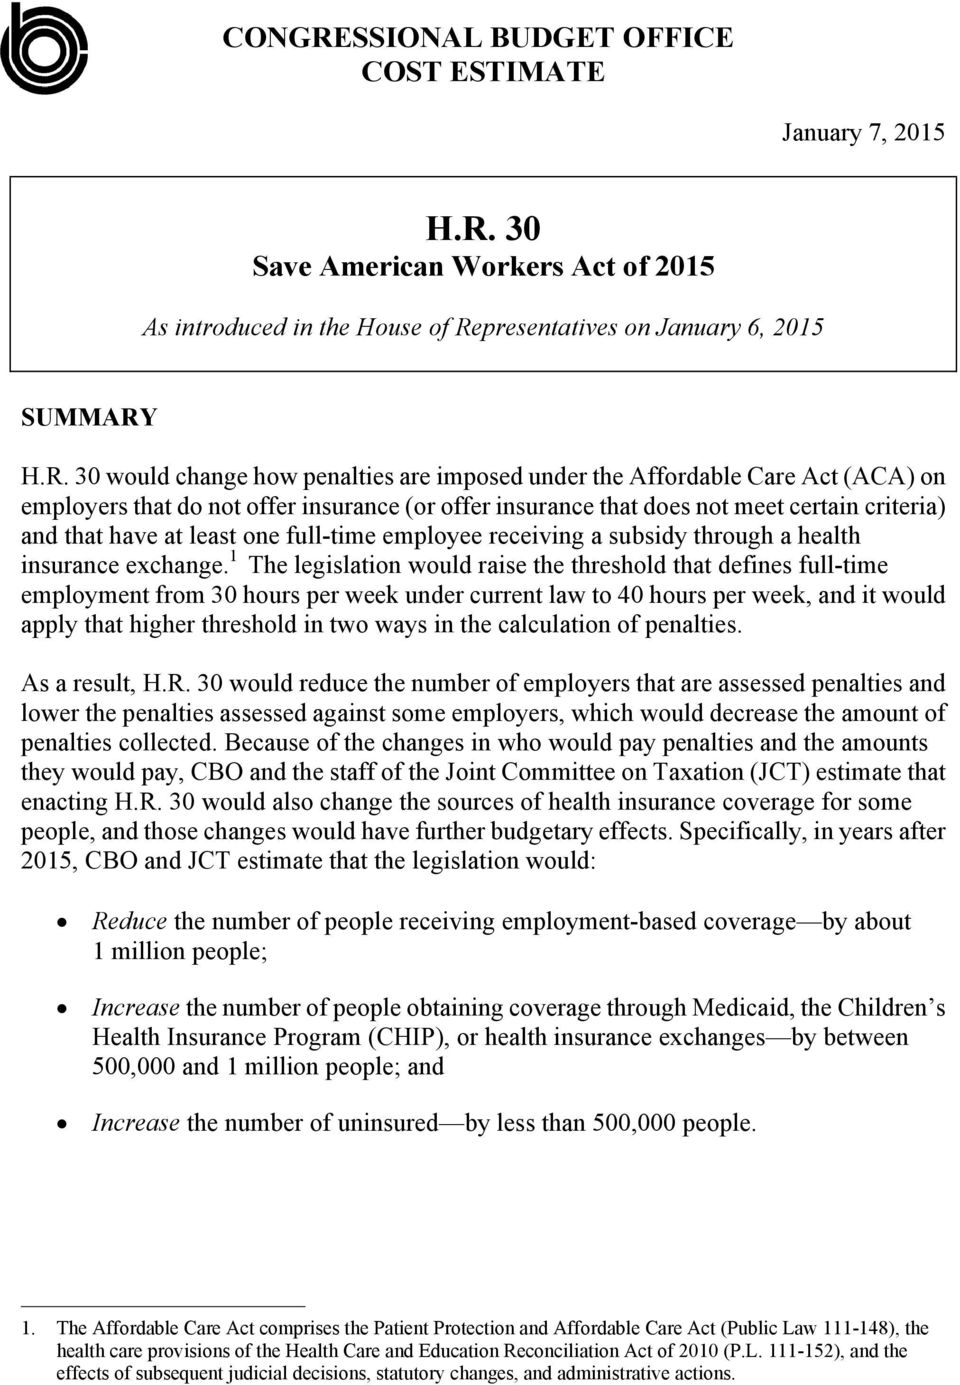 30 Save American Workers Act of 2015 As introduced in the House of Re